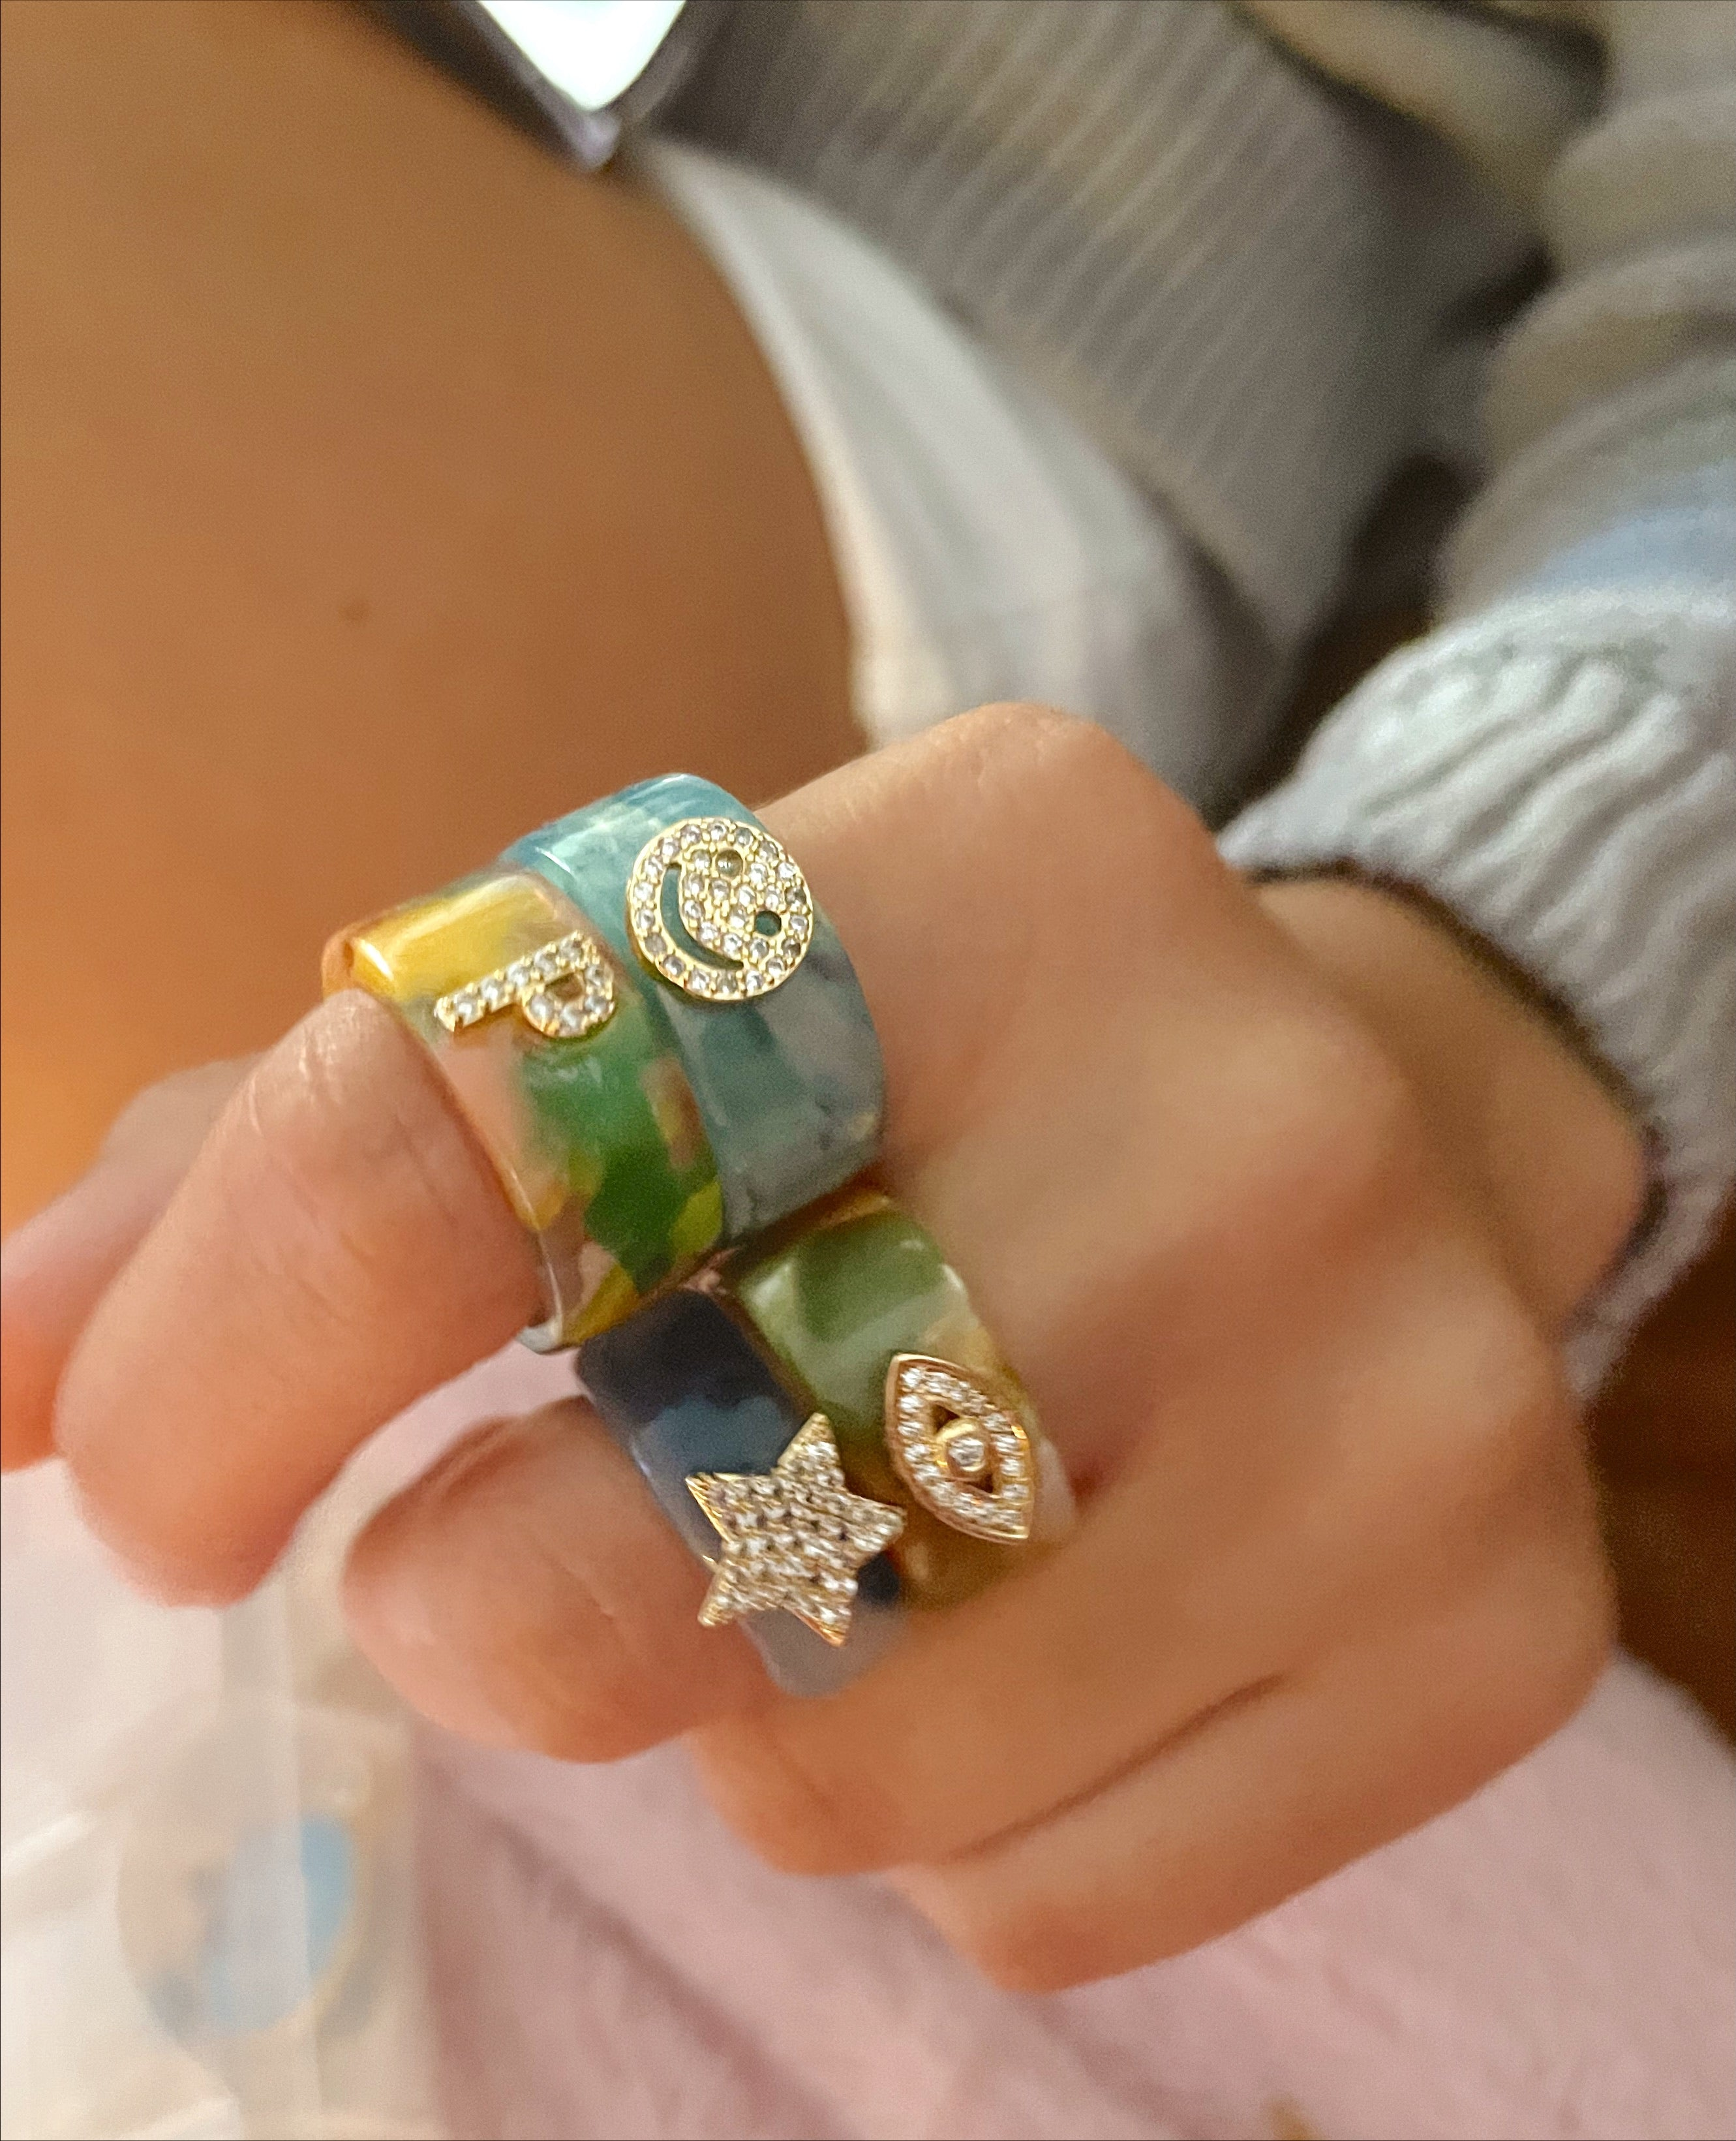 Embellished acrylic rings with charm